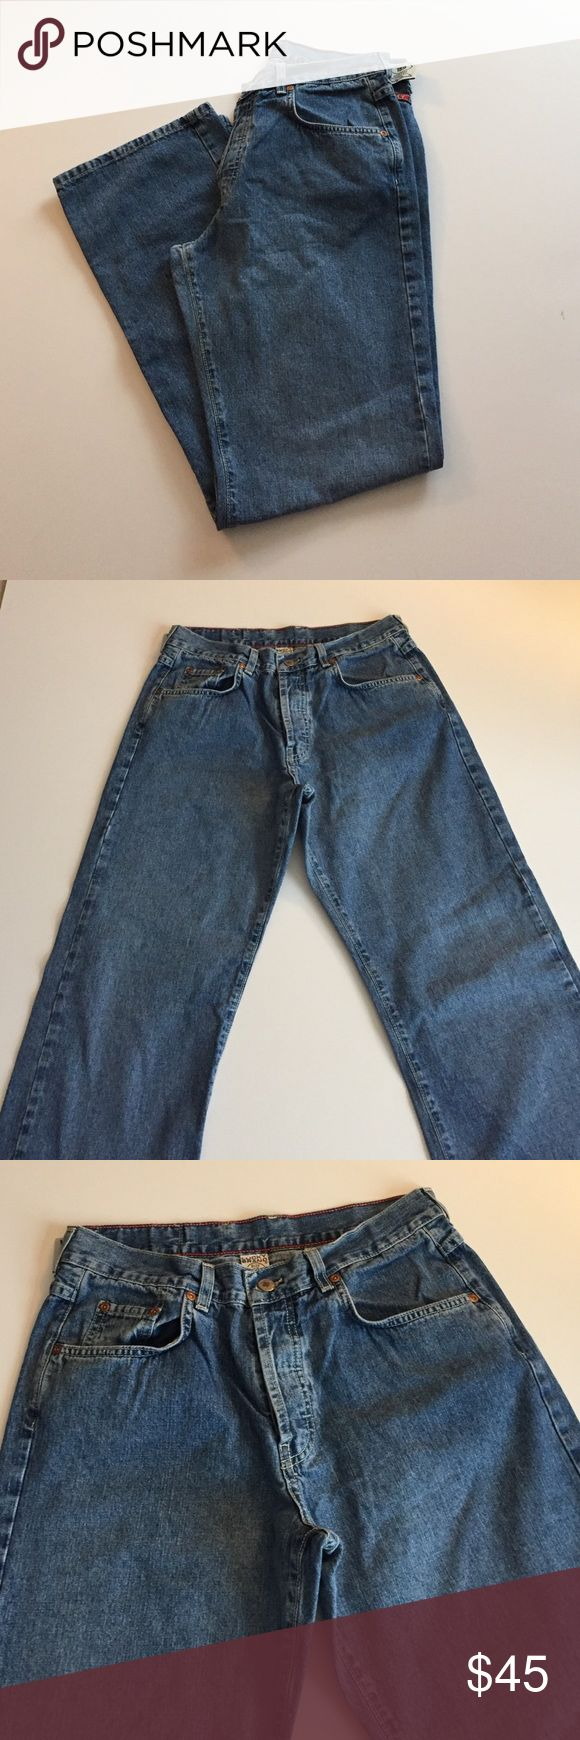 """Lucky Brand Low Rise Bootleg Button Fly Jeans Excellent condition. 100% cotton, size 12/31. 5 pocket, 4 button fly. Inseam 31.5"""", front rise 10.5"""", waist 31"""", leg opening 9"""".  Style 159. Not from a smoke-free house. (22) Lucky Brand Jeans Boot Cut"""